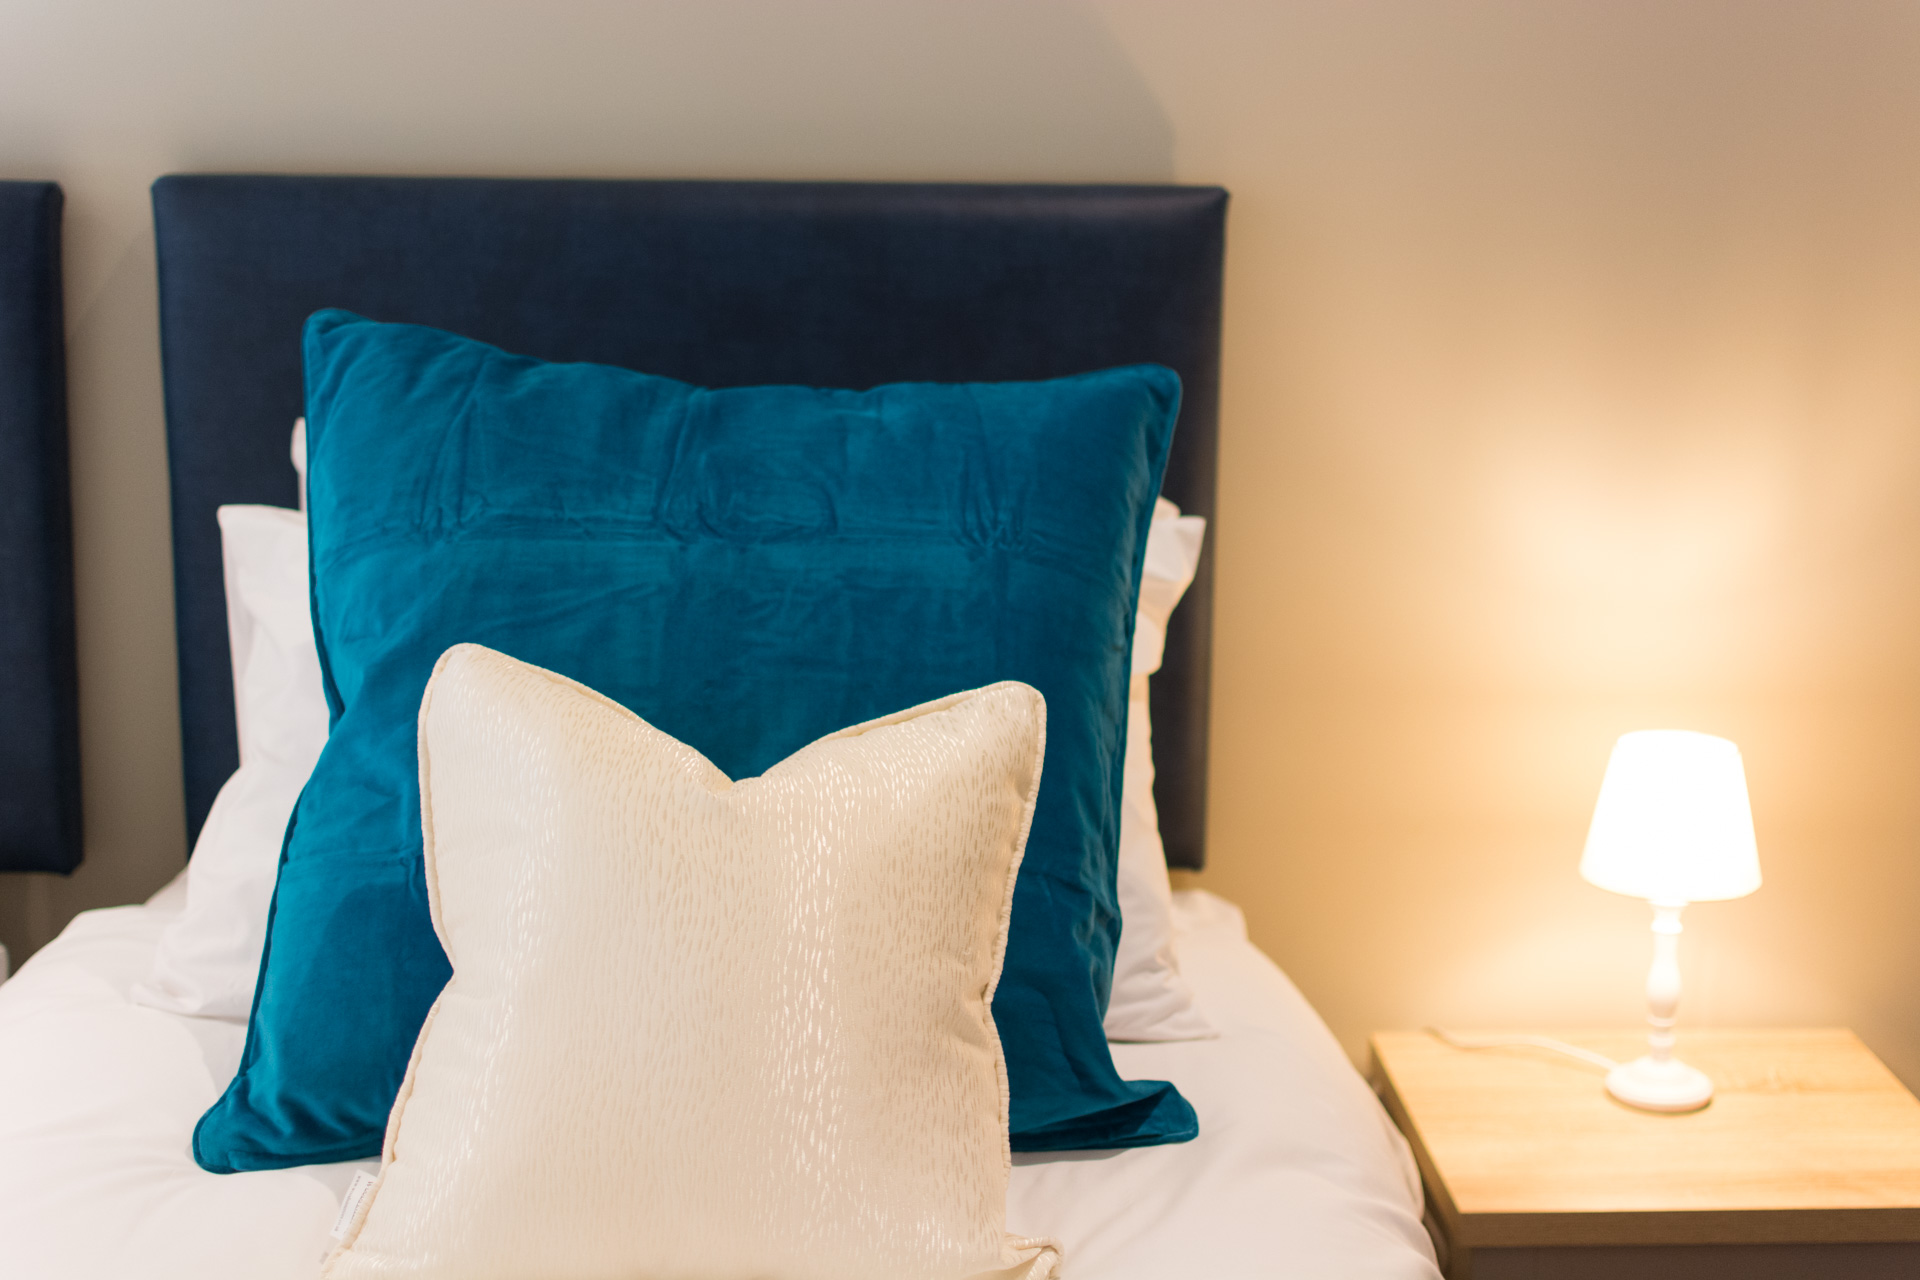 Close up photo of large blue and small white pillows in a twin bedroom.